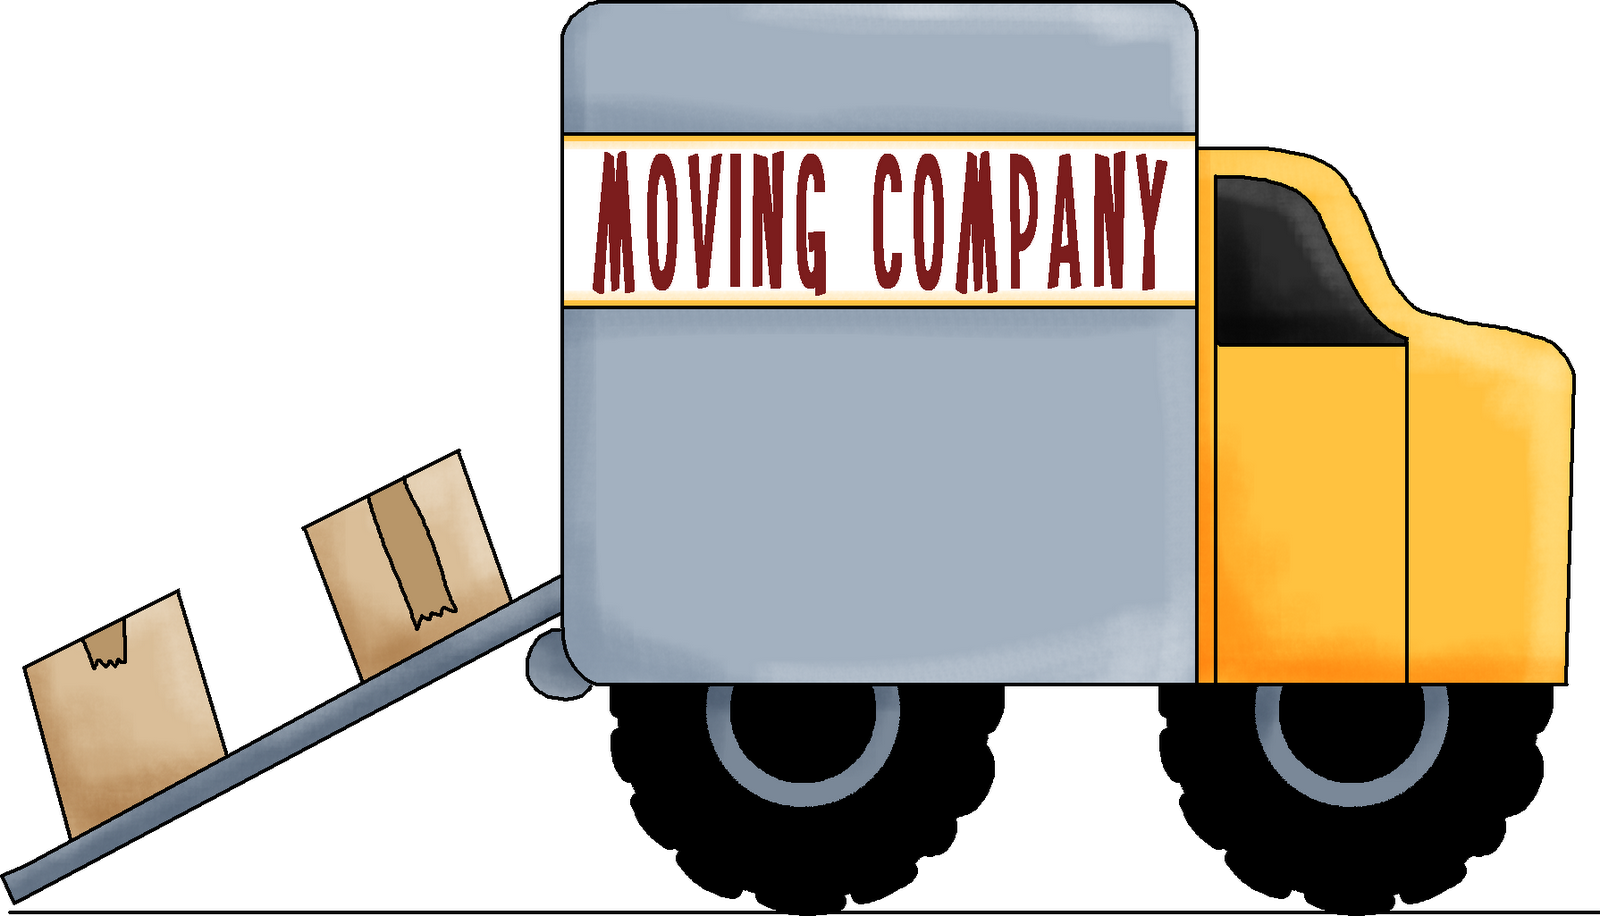 Free Office Move Cliparts, Download Free Clip Art, Free Clip Art on.